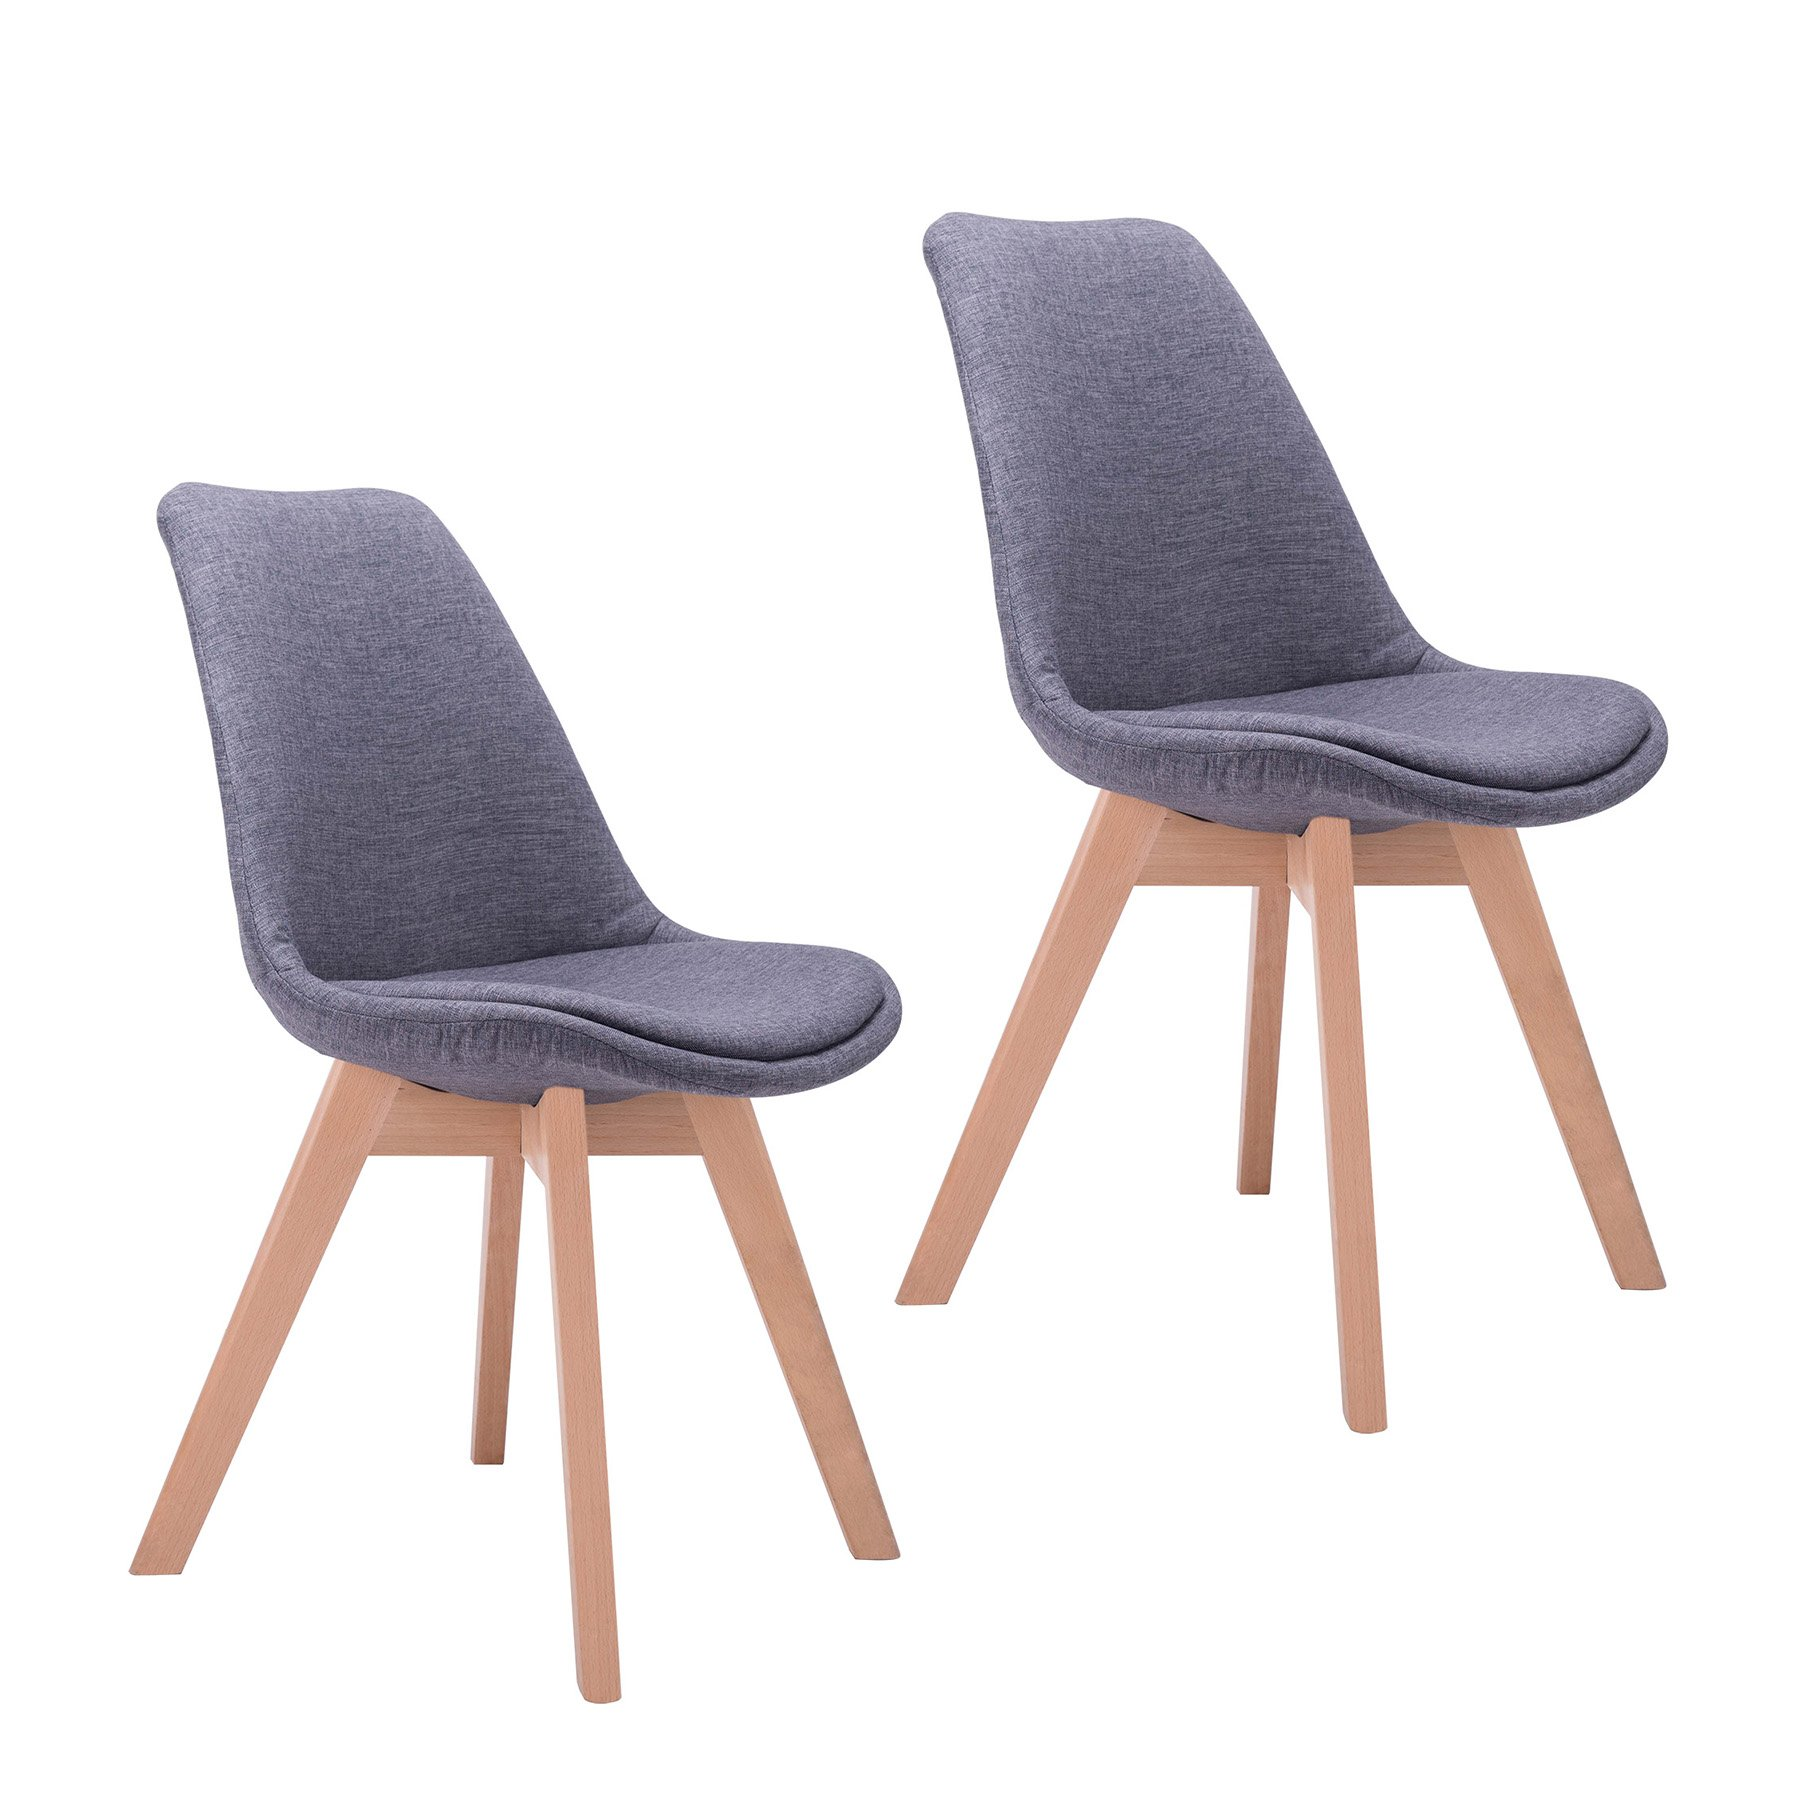 CO-Z Mid Century Modern Dinning Chairs, Modern Eames DSW Eiffel Side Chair for Kitchen (Sets of 2, Grey)